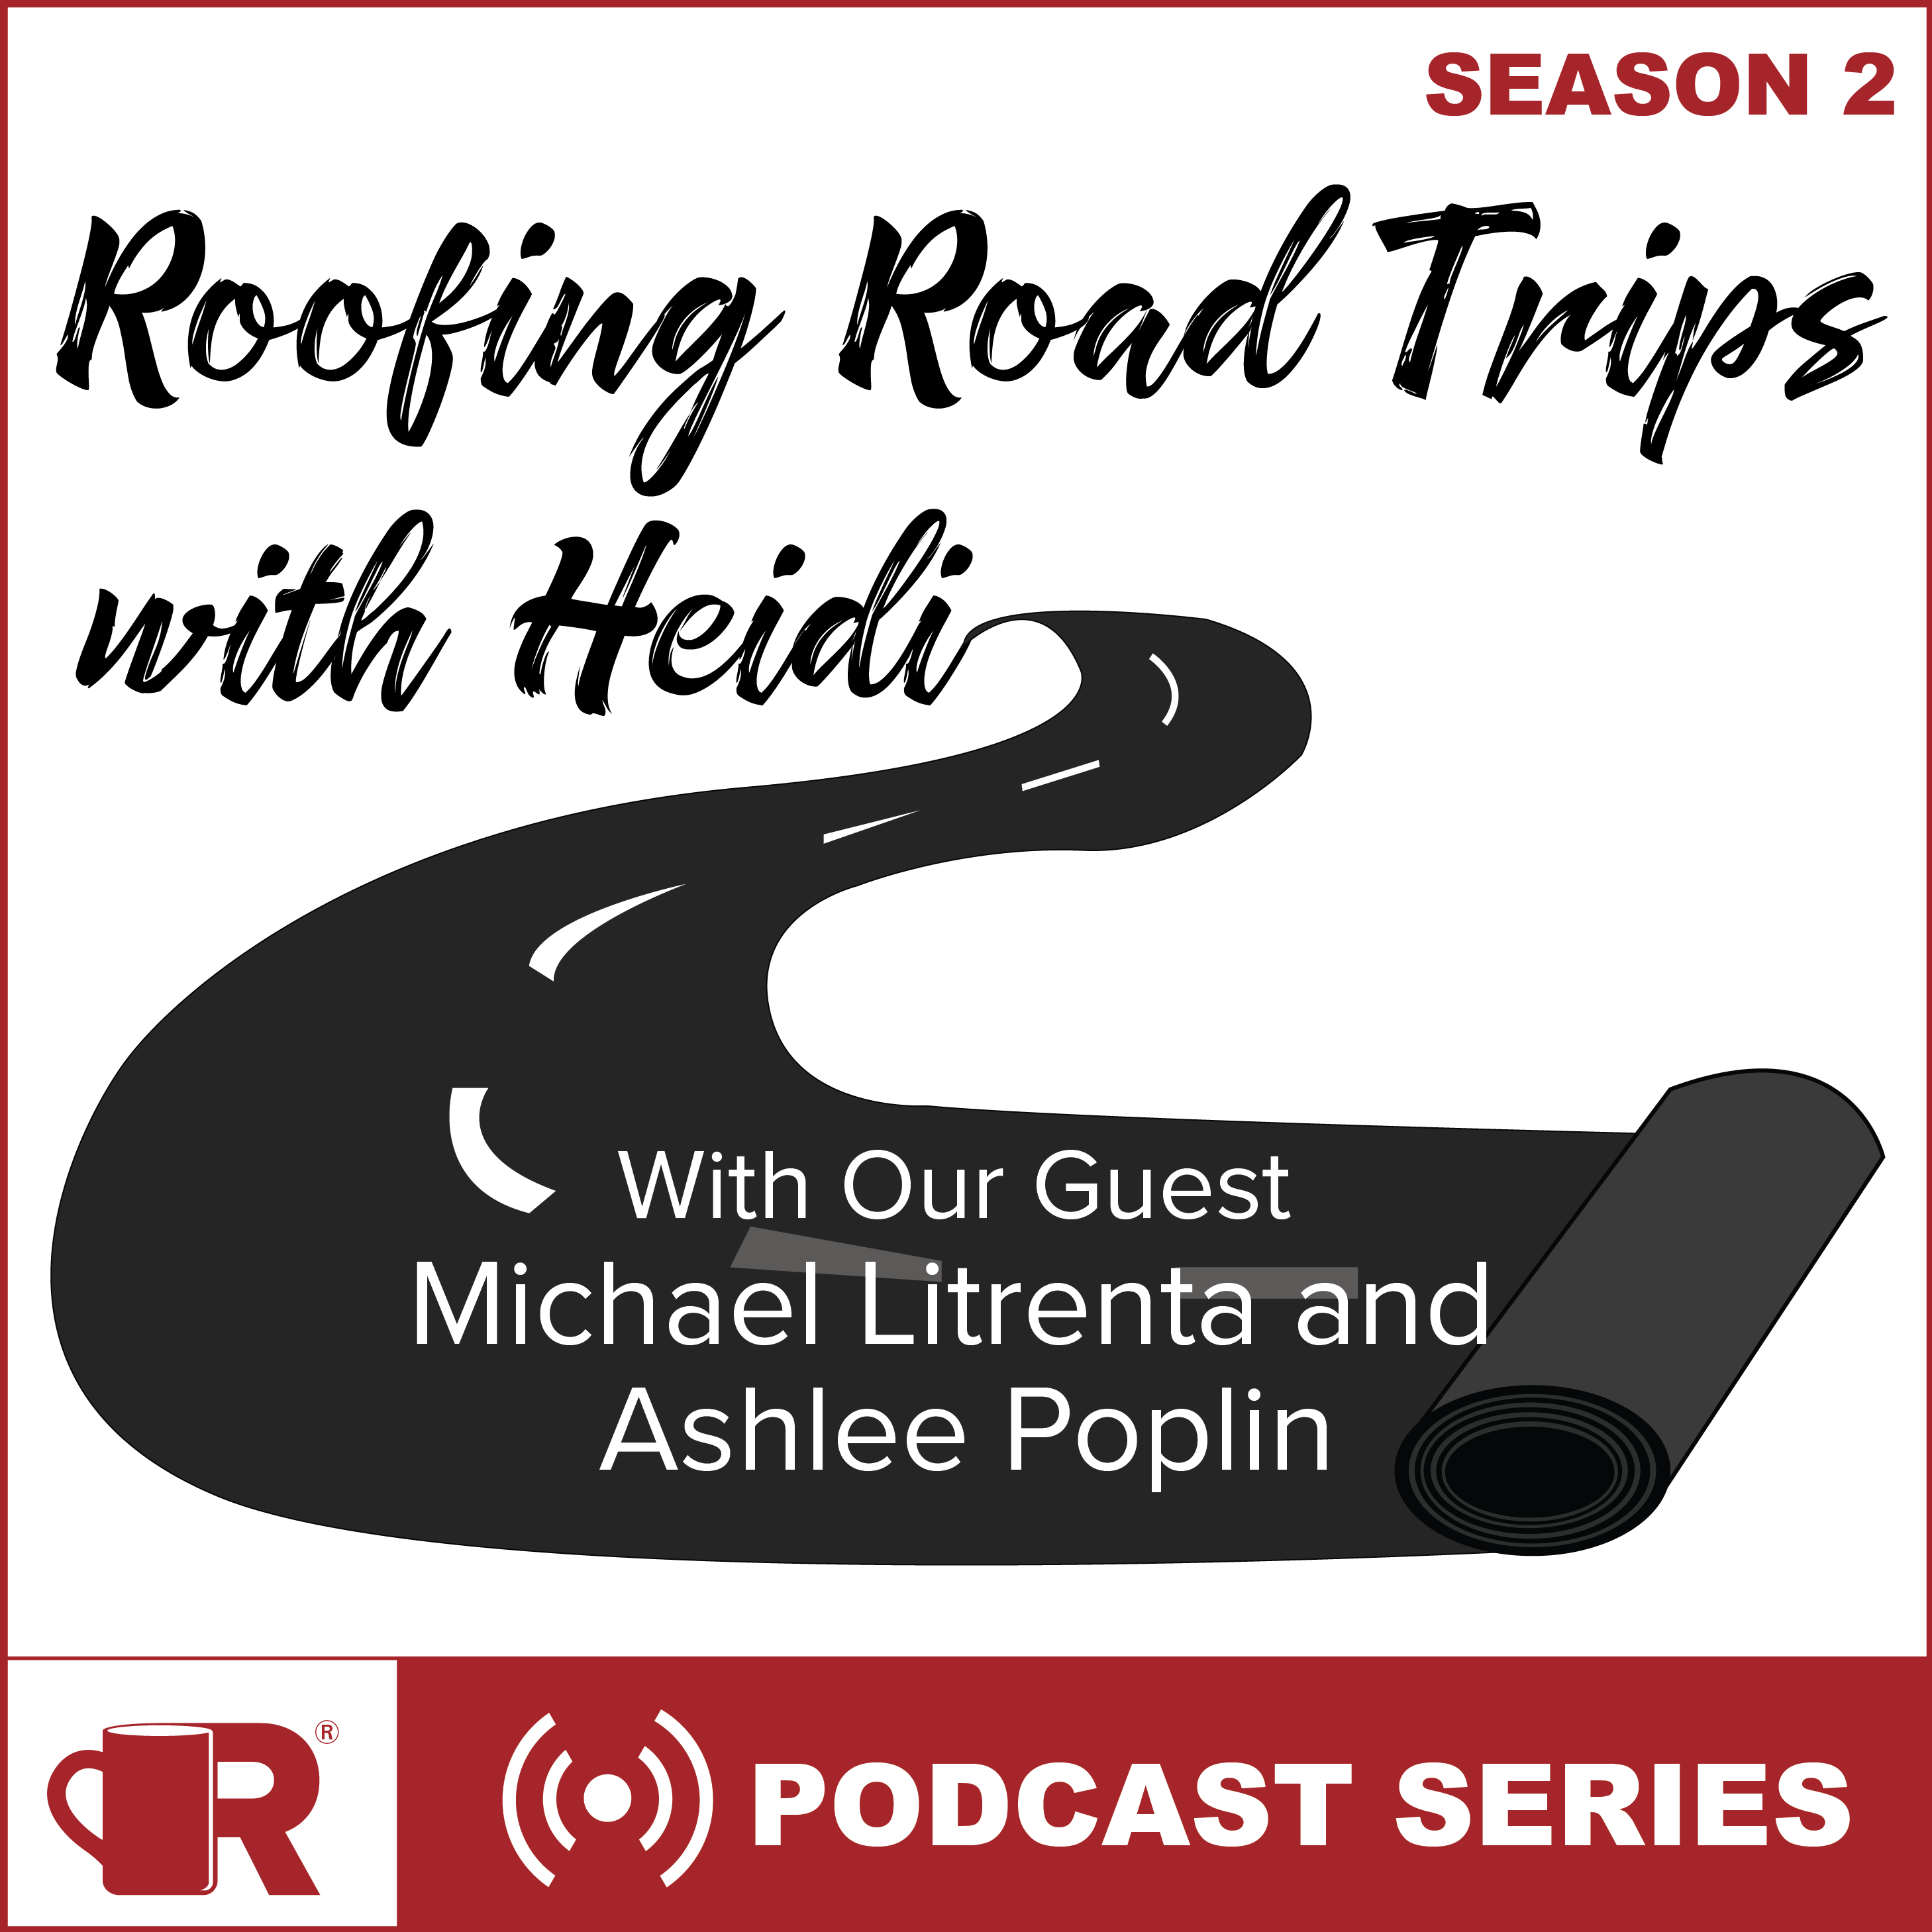 Roofing Road Trips with Heidi podcast with special guests Michael Litrenta and Ashlee Poplin